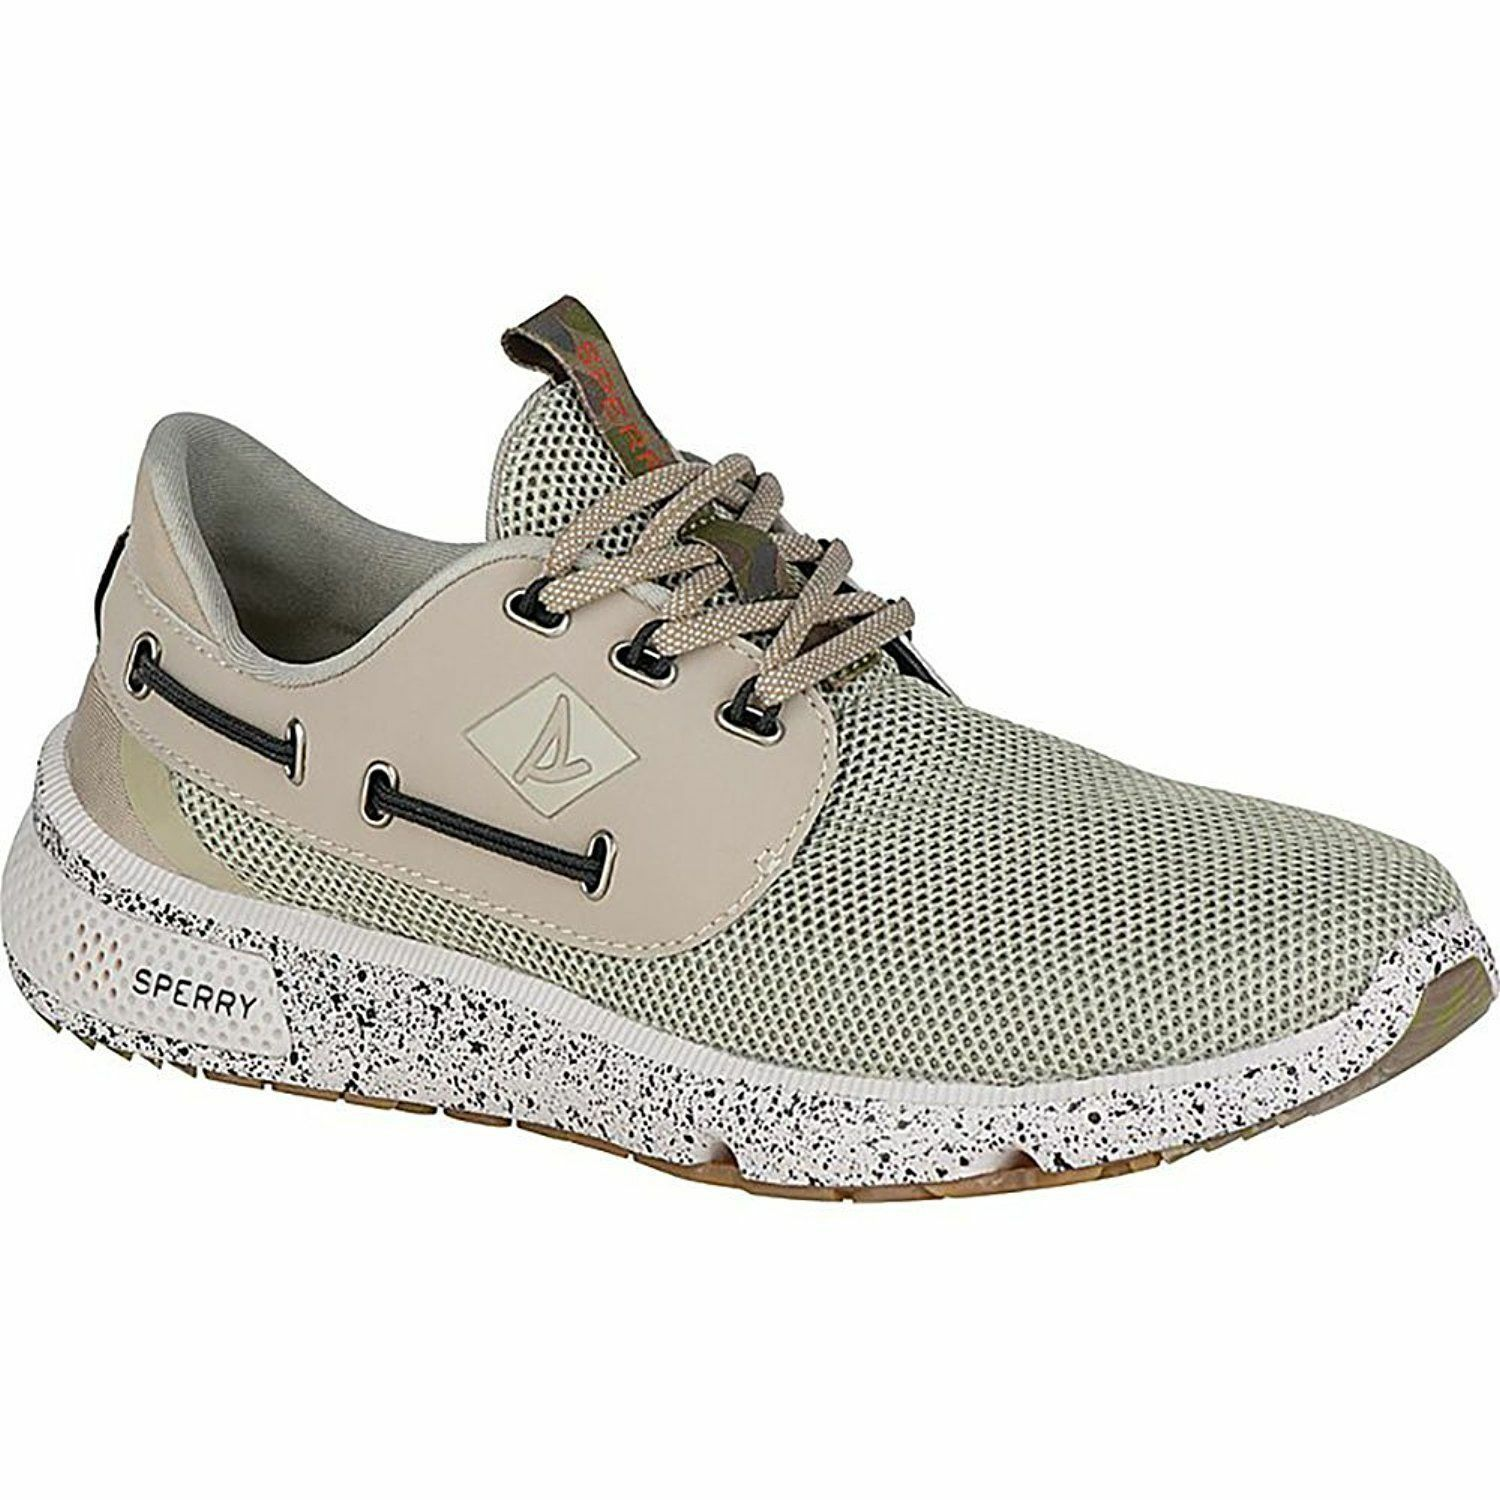 Sperry Top-Sider Men's 7 Seas 3-Eye Camo Boating shoes, White Camo,8.5M WAS110